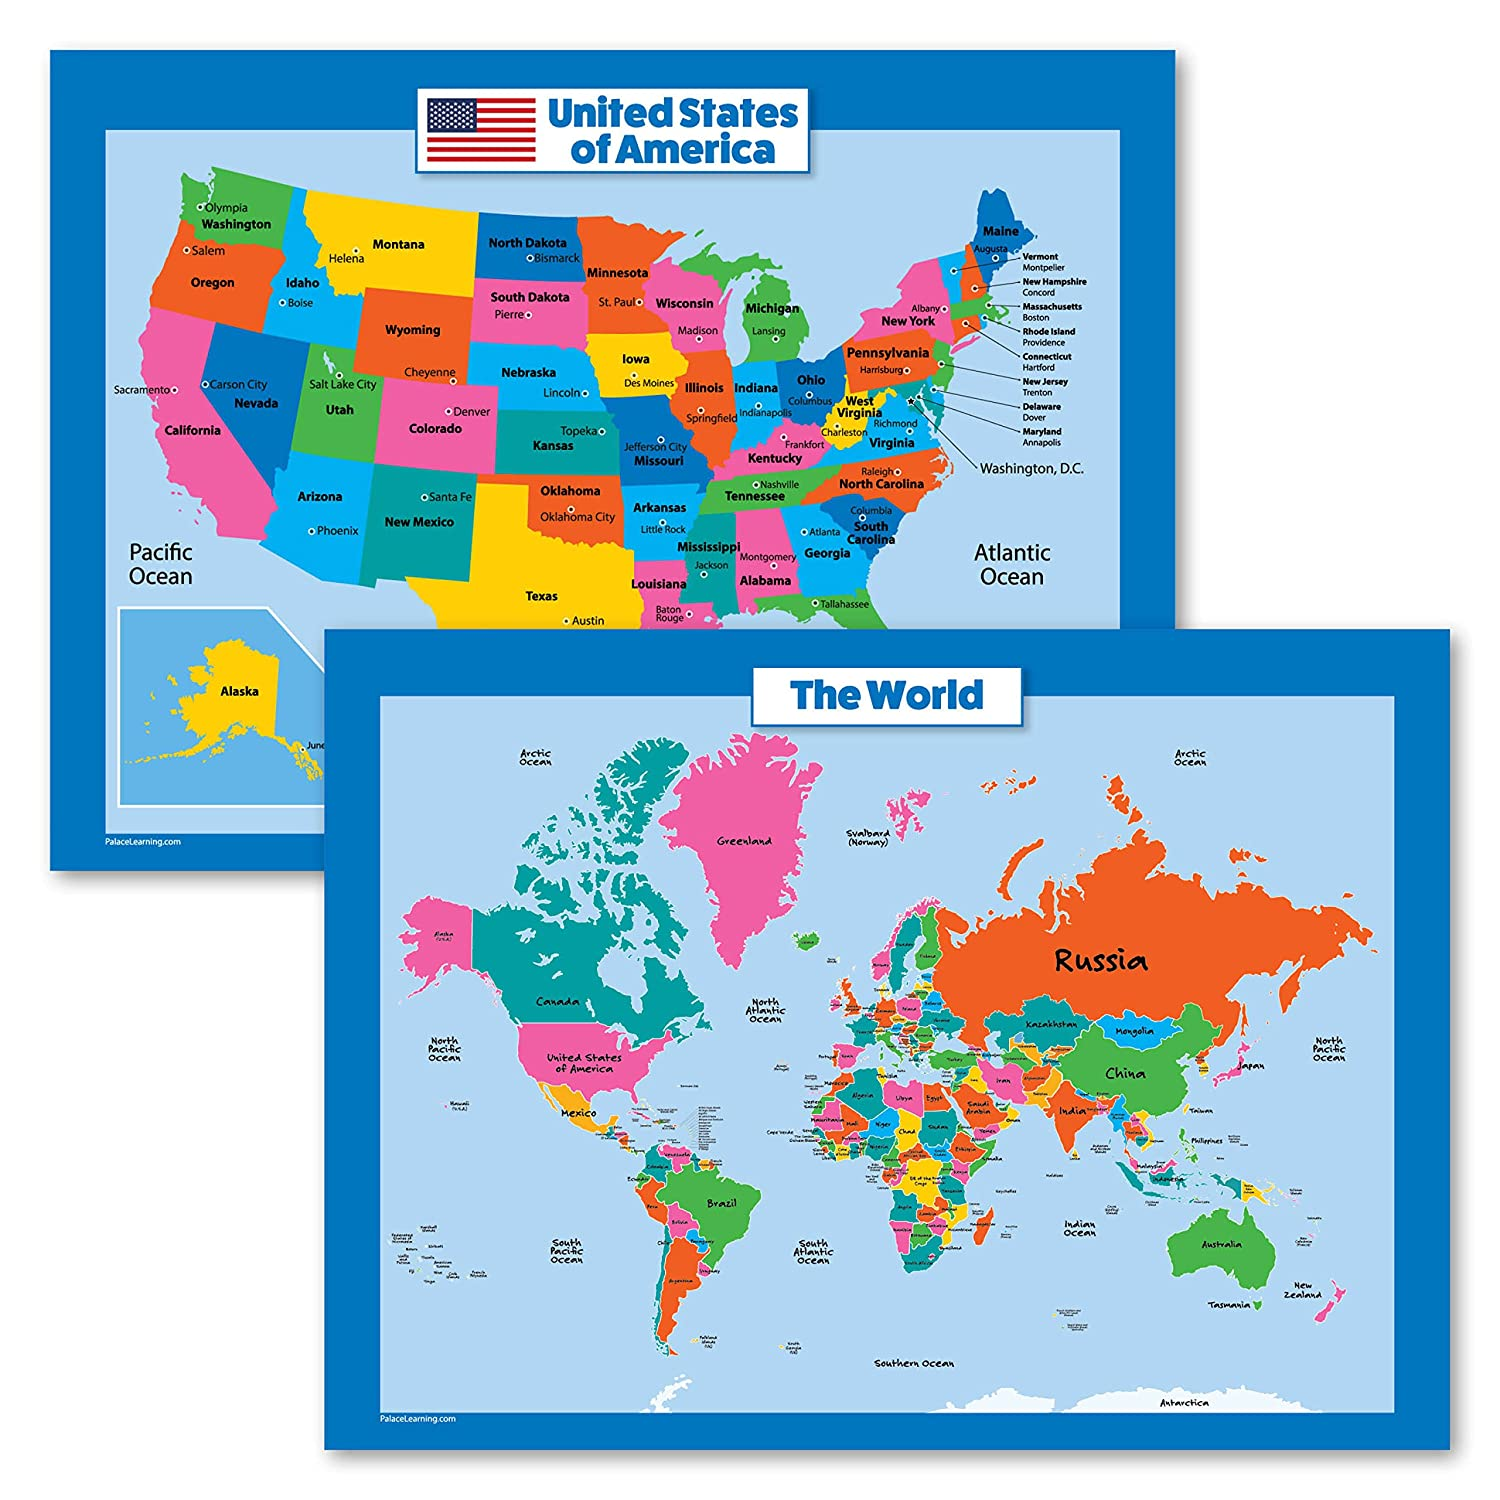 World Map Of The United States Amazon.com: World Map and USA Map for Kids   2 Poster Set